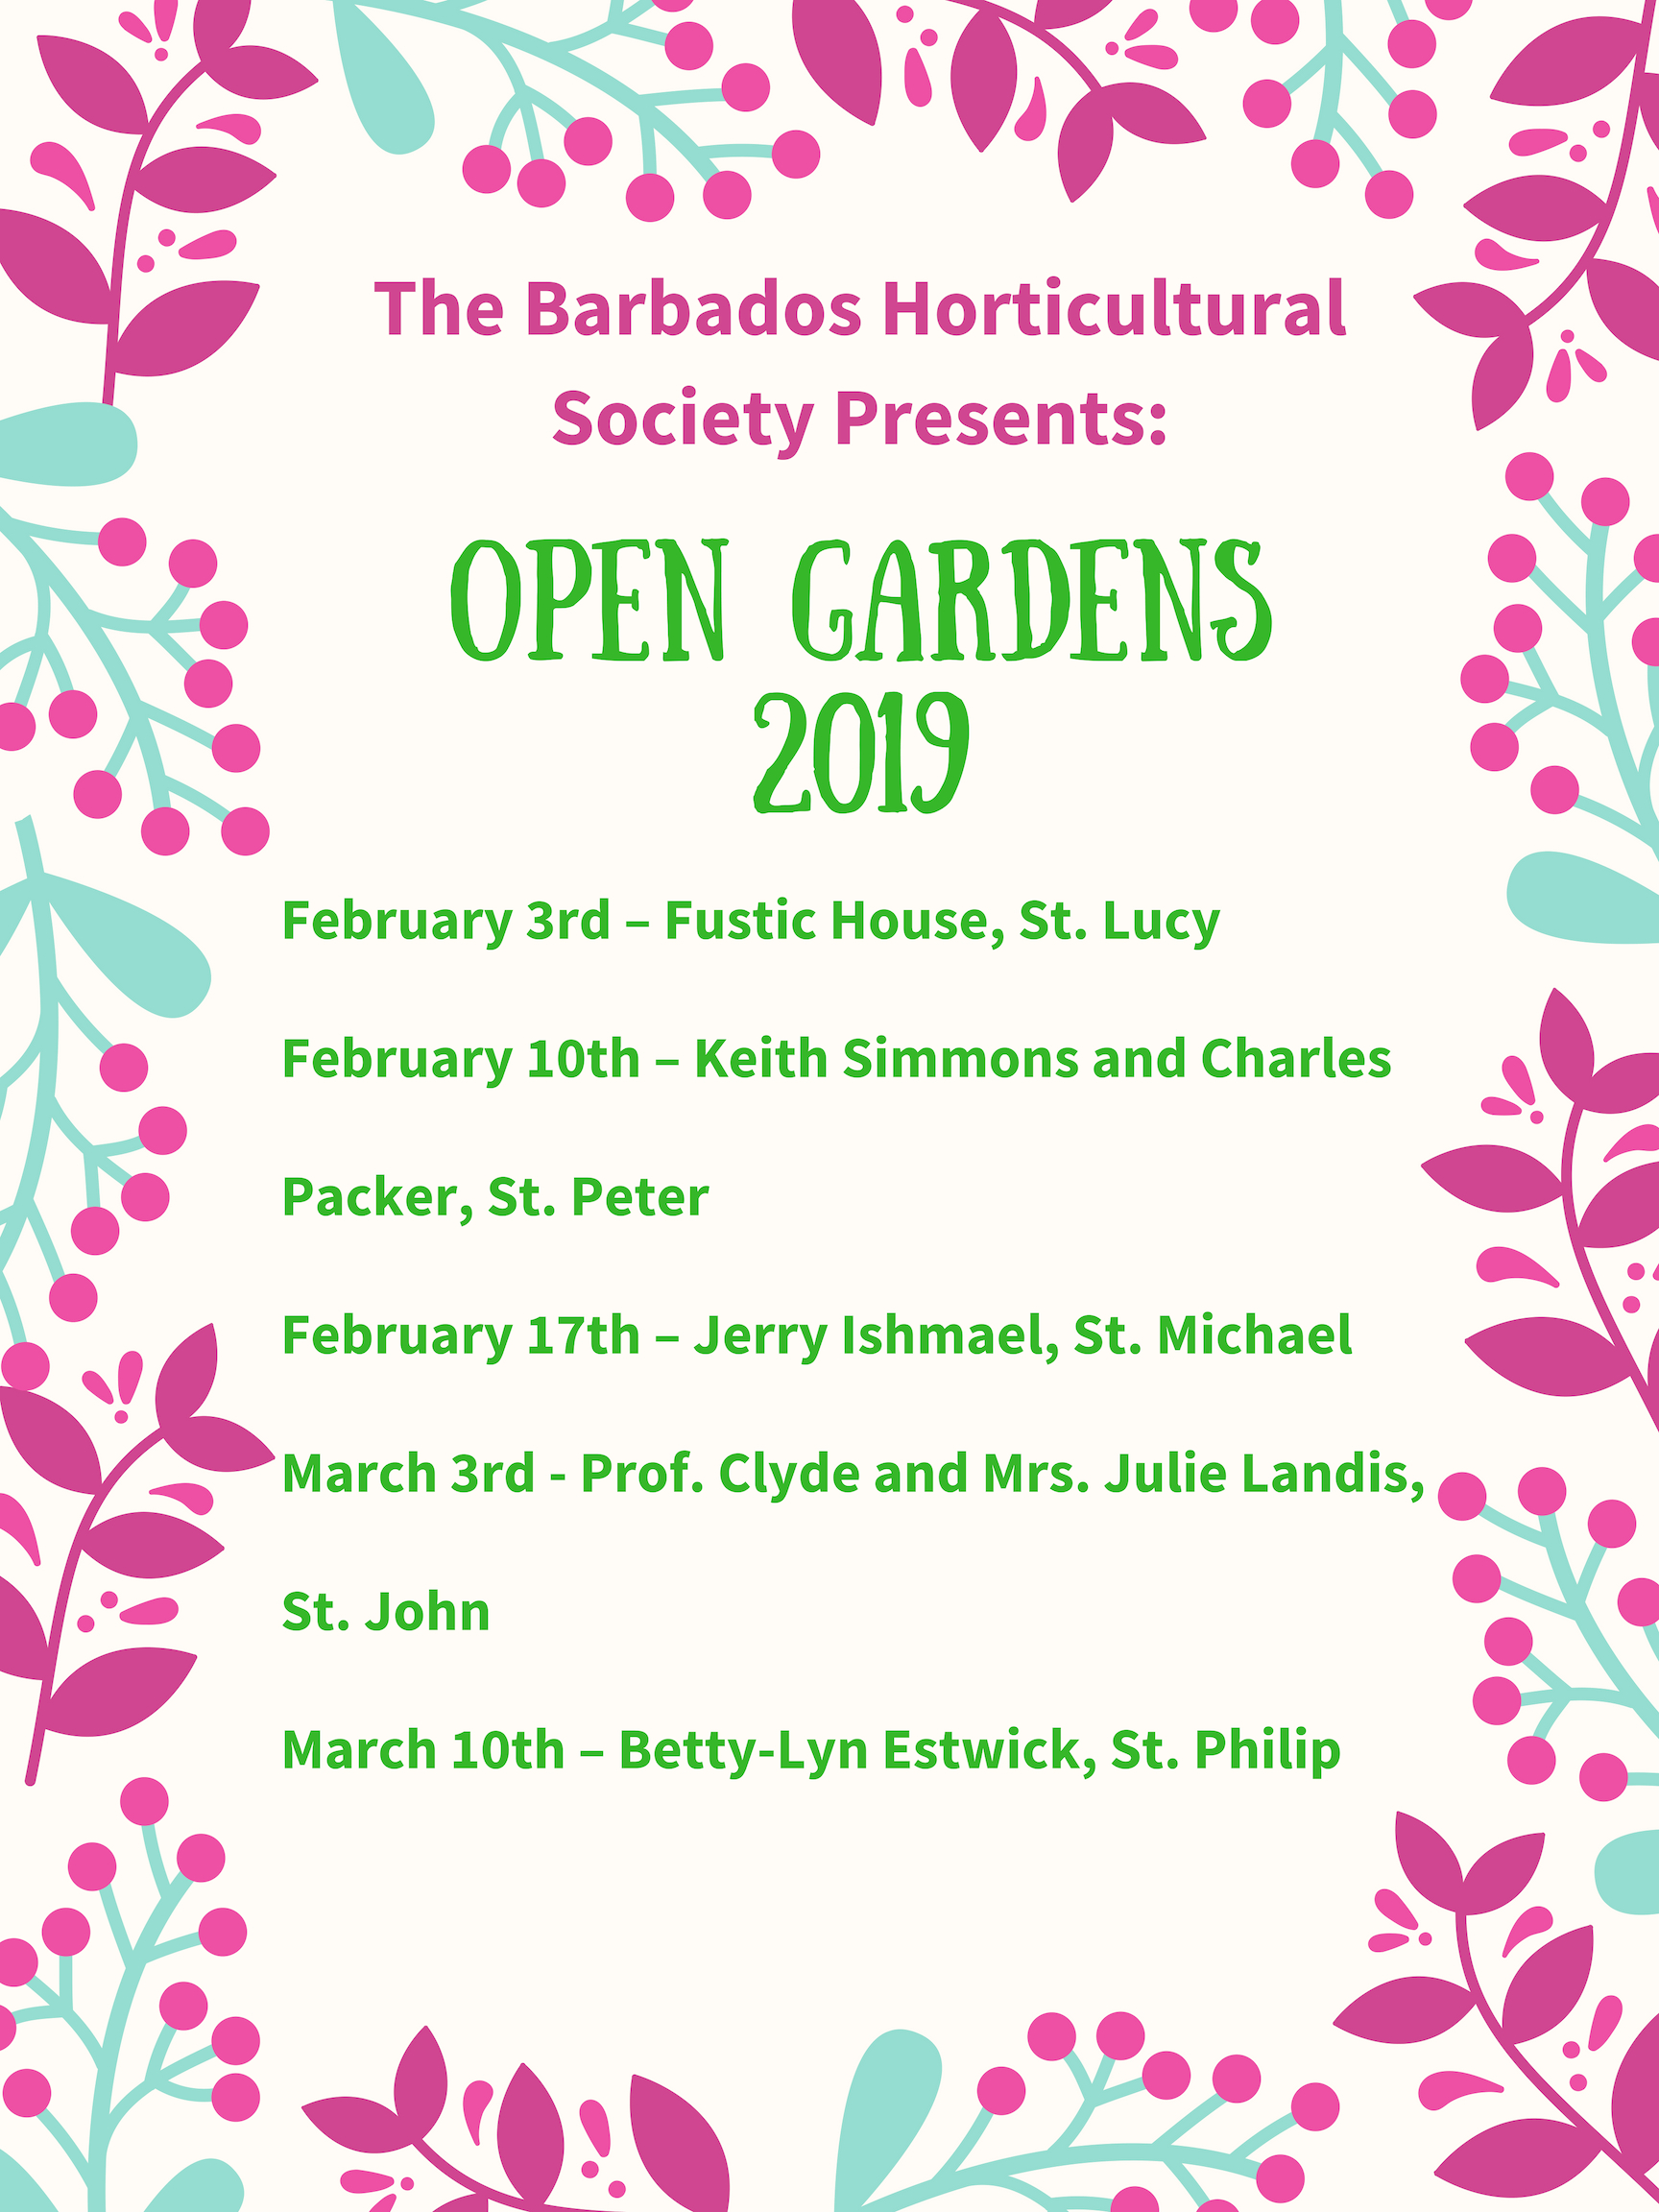 Barbados horticultural society presents_